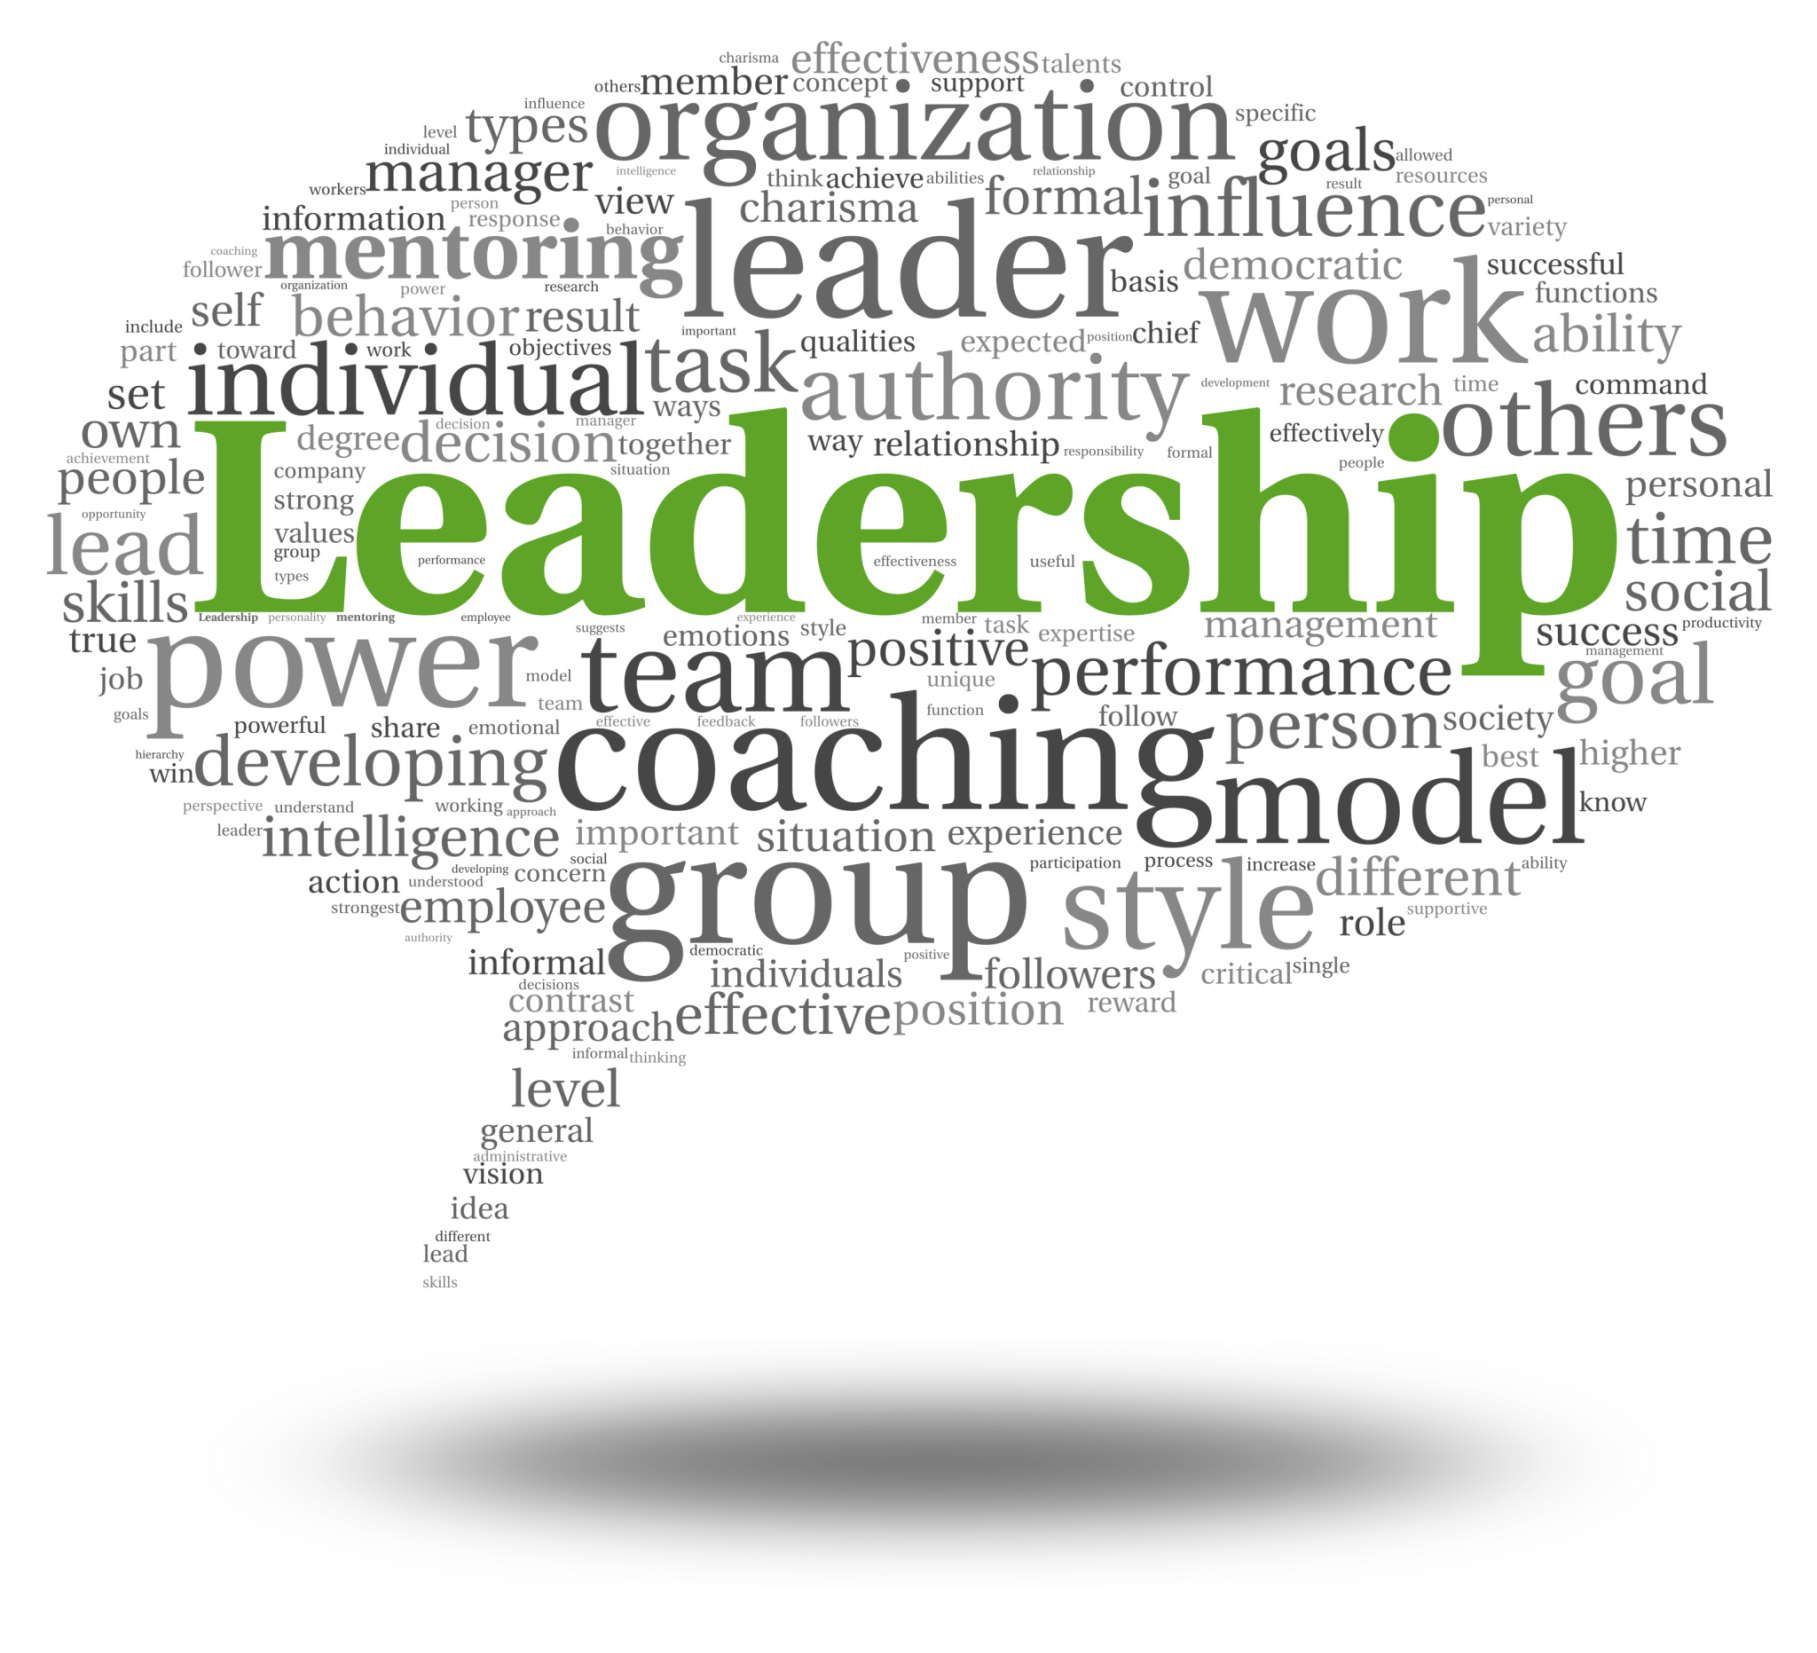 charismatic leadership a controversial style essay Mahatma gandhi was one of the most important person and charismatic charismatic leadership style of mahatma gandhi charismatic leadership style of mahatma.